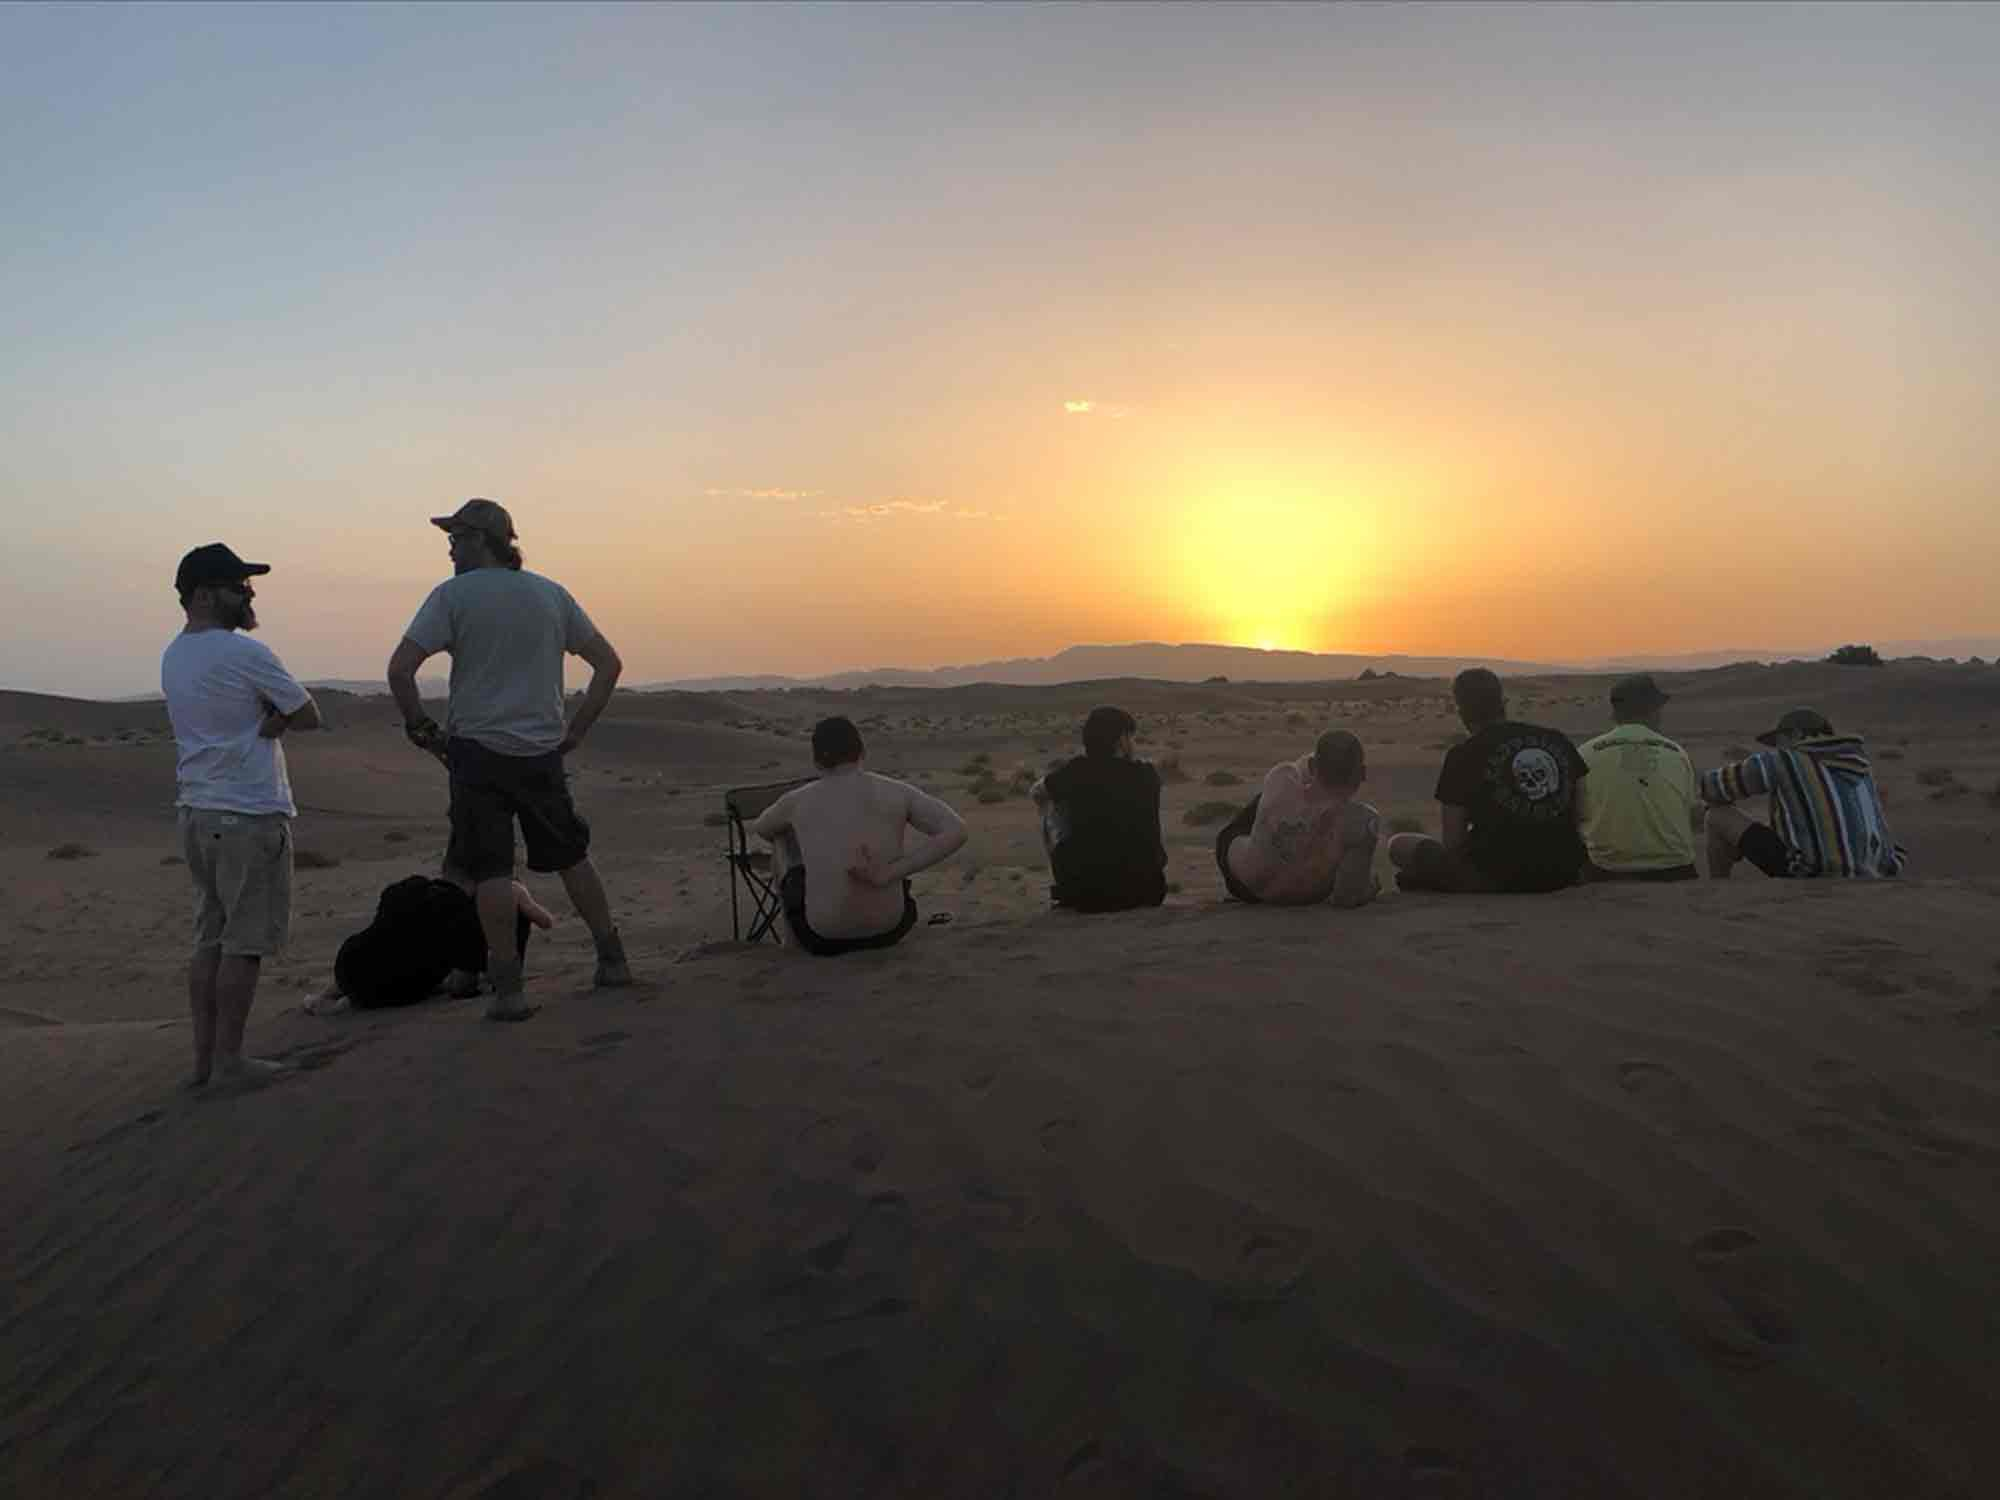 The team sits on a dune to appreciate the sunset after one of our toughest days. Nothing brings people together like a challenge, and this ride was one hell of a challenge.